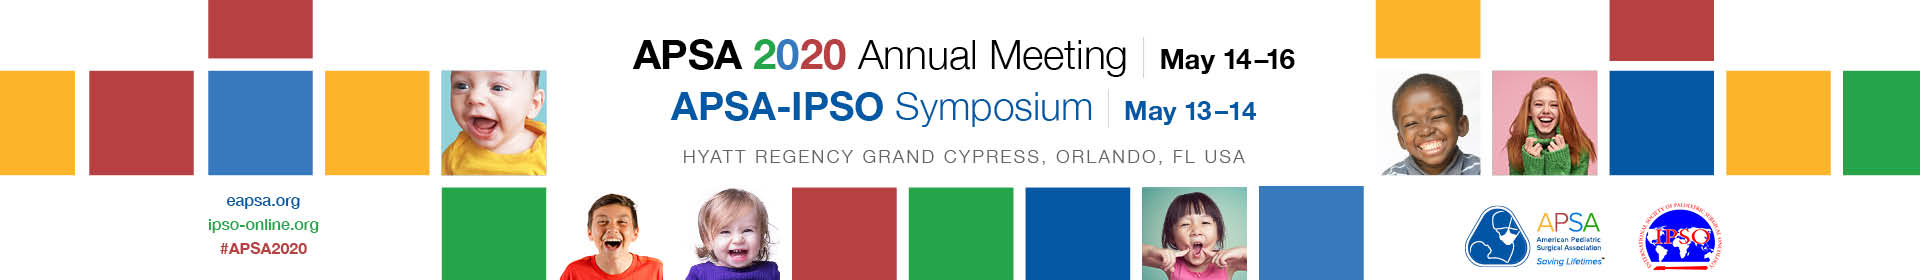 APSA-IPSO Symposium and APSA 2020 Annual Meeting Event Banner